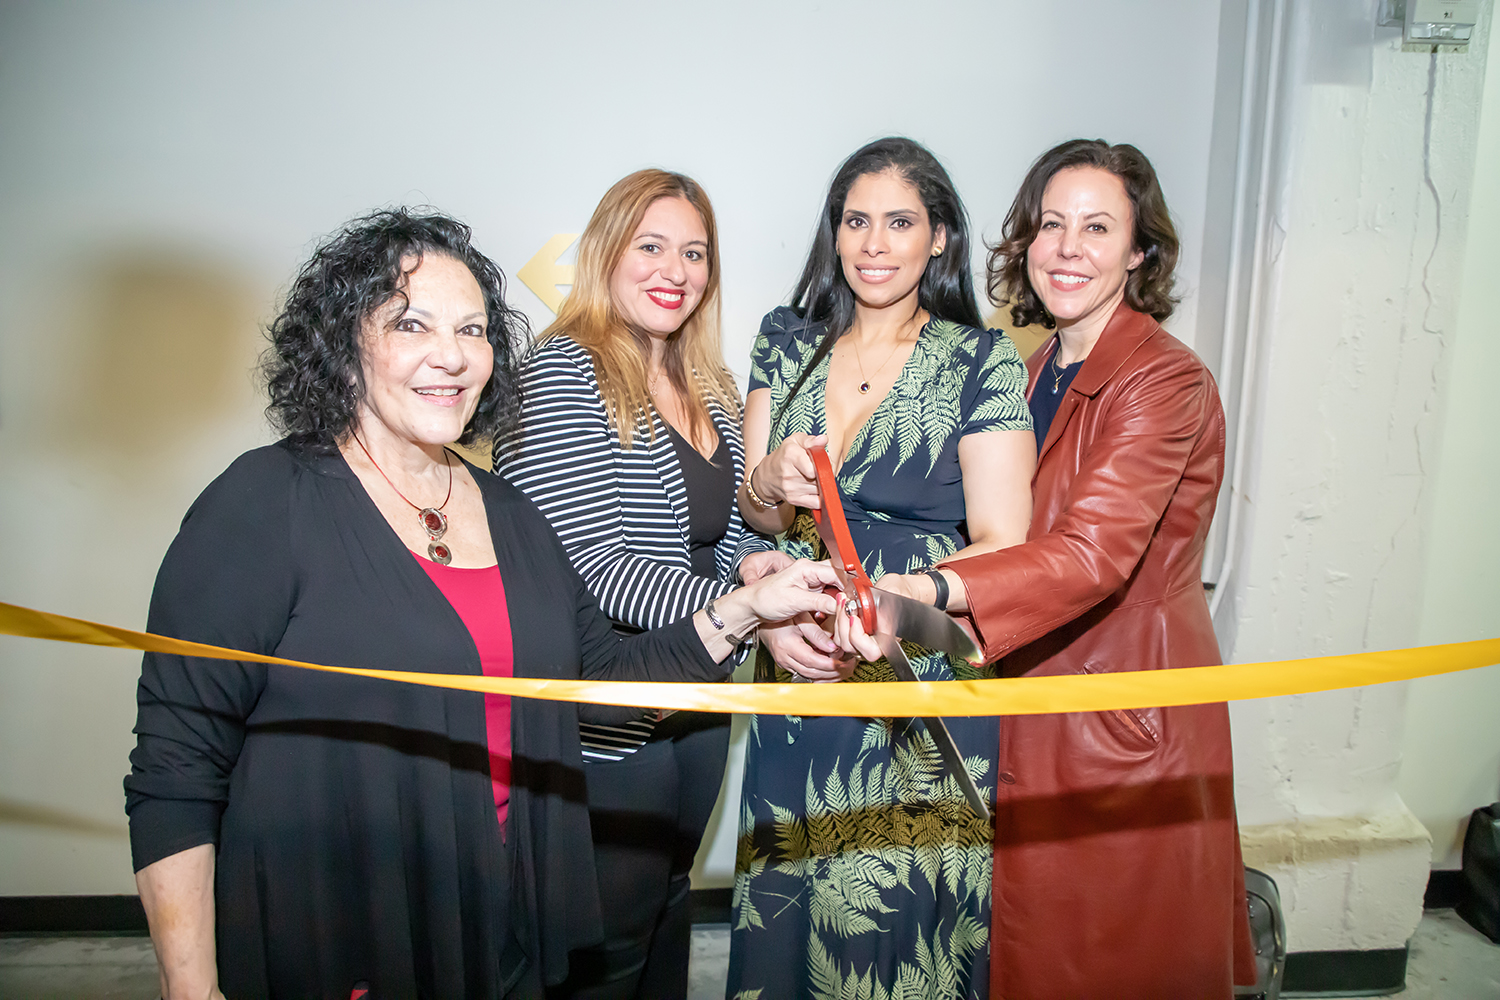 Desuar Spa owner Deisy Suarez-Giles (second from right) cuts the ribbon, accompanied by from L to R: Patti Berman, Joella Hopkins, and Blair Besten. [Photo courtesy of Desuar Spa]